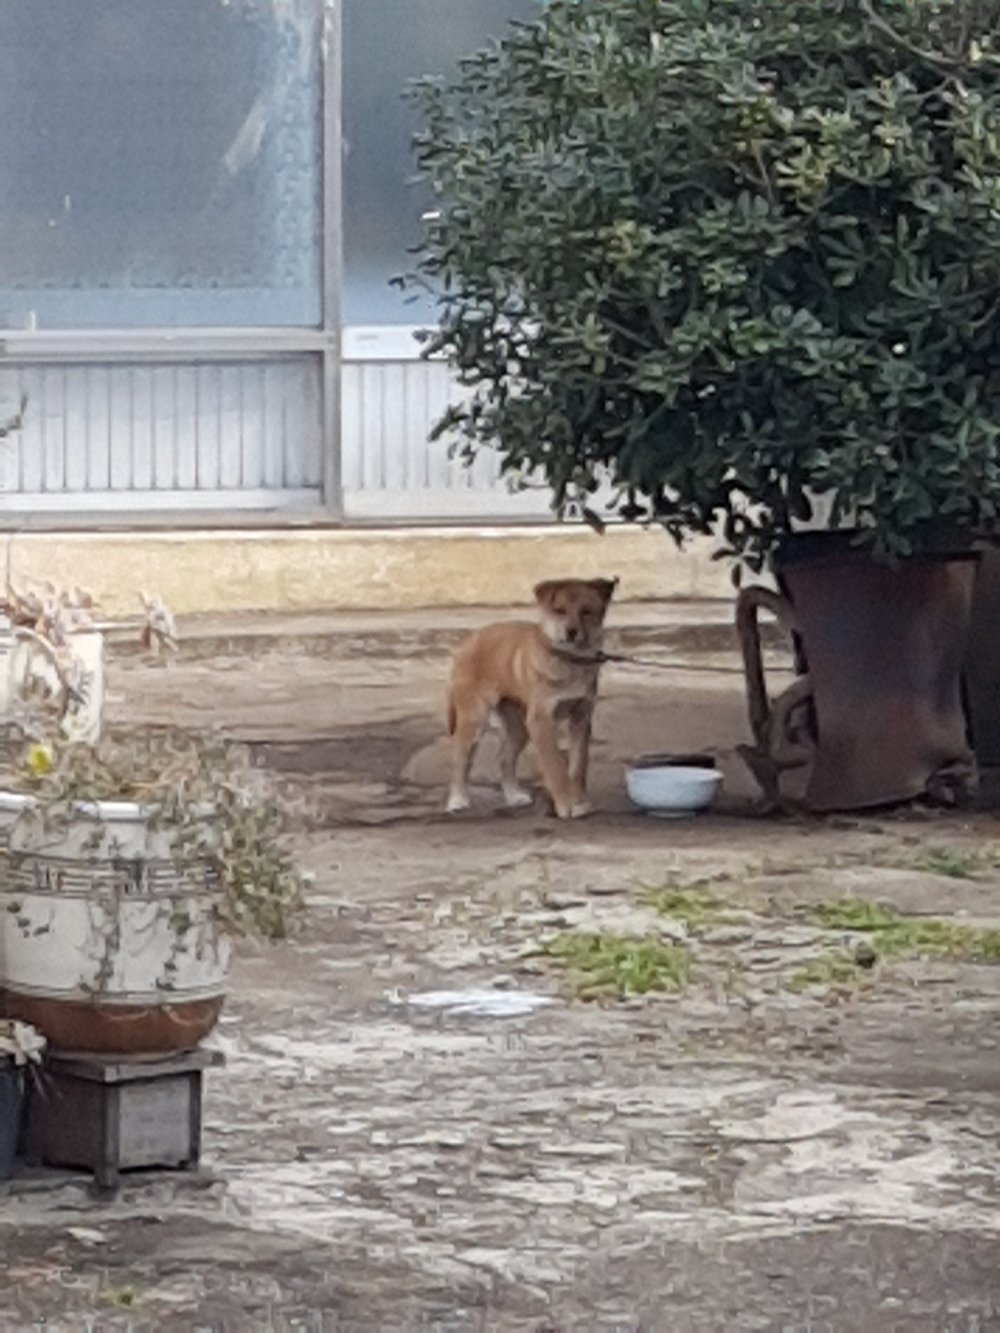 Nuri tied up outside as an outdoor only dog before rescue